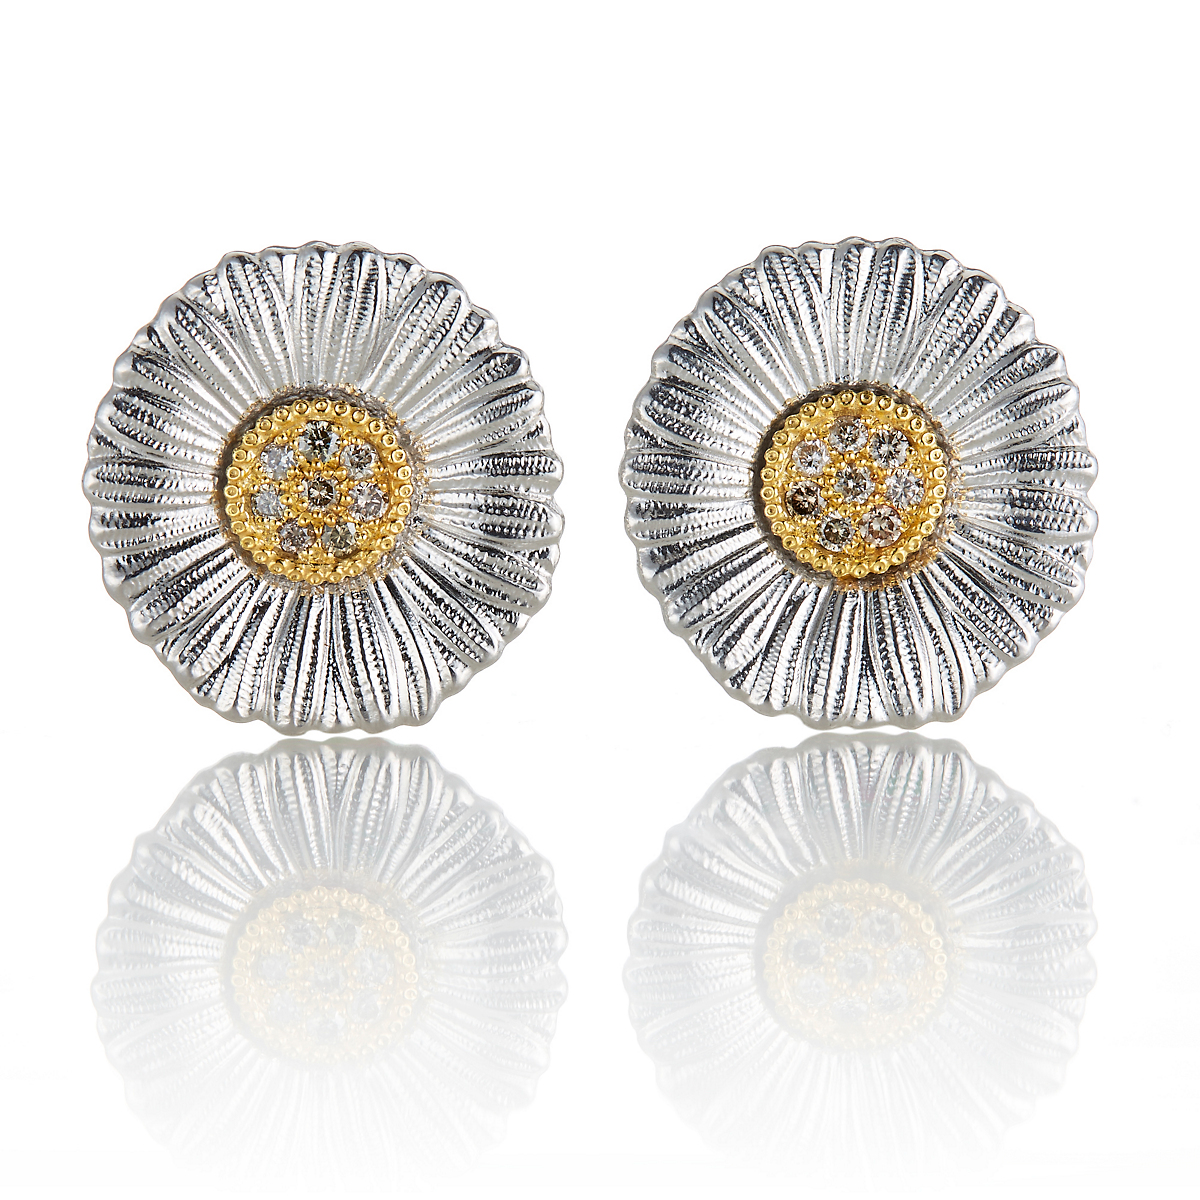 Buccellati Large Daisy Blossom With Diamonds Earrings